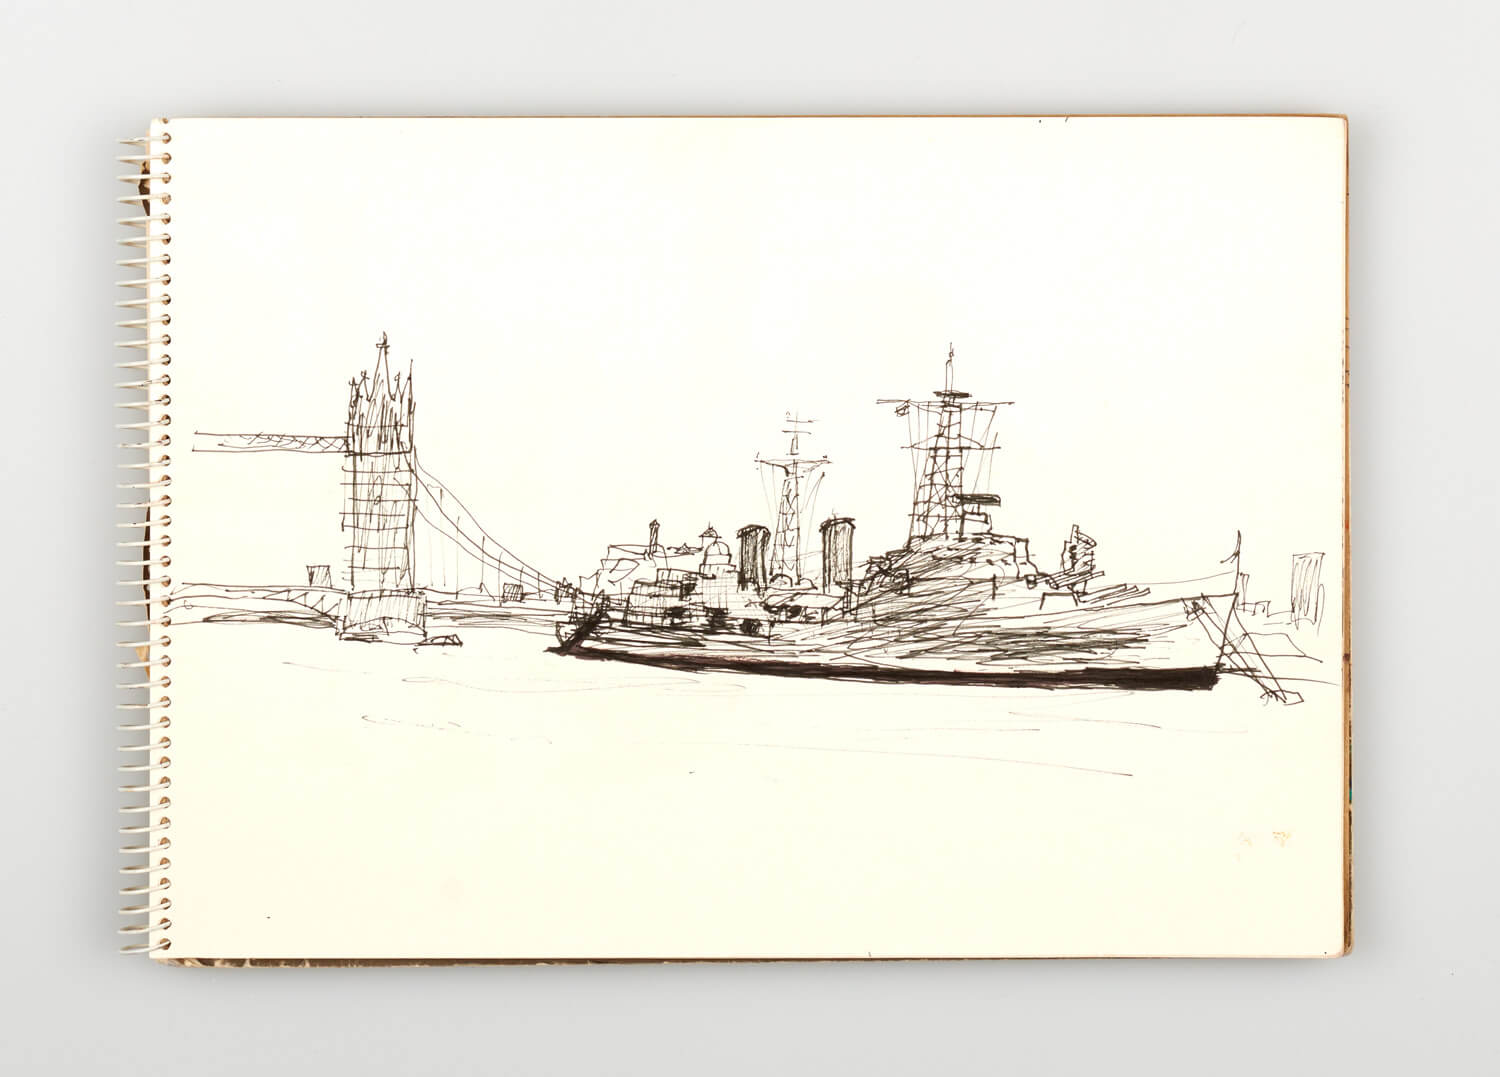 JB225 - Sketch for Bridges on the River Thames - 1992 - 21 x 30 cm - Pen and Ink on cartridge paper